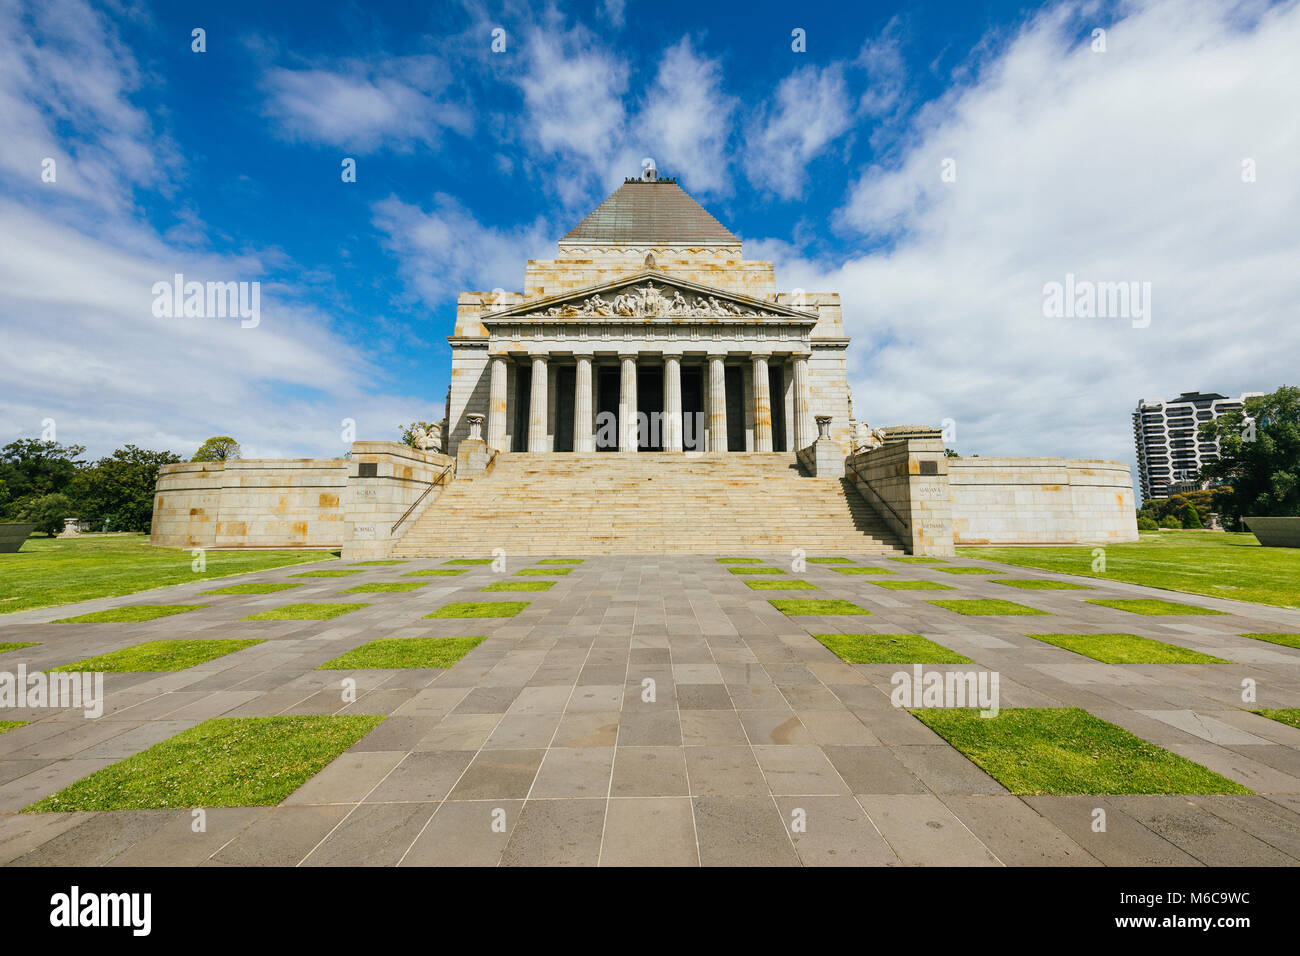 Point of View shot of the Shrine of Remembrance, Melbourne. - Stock Image